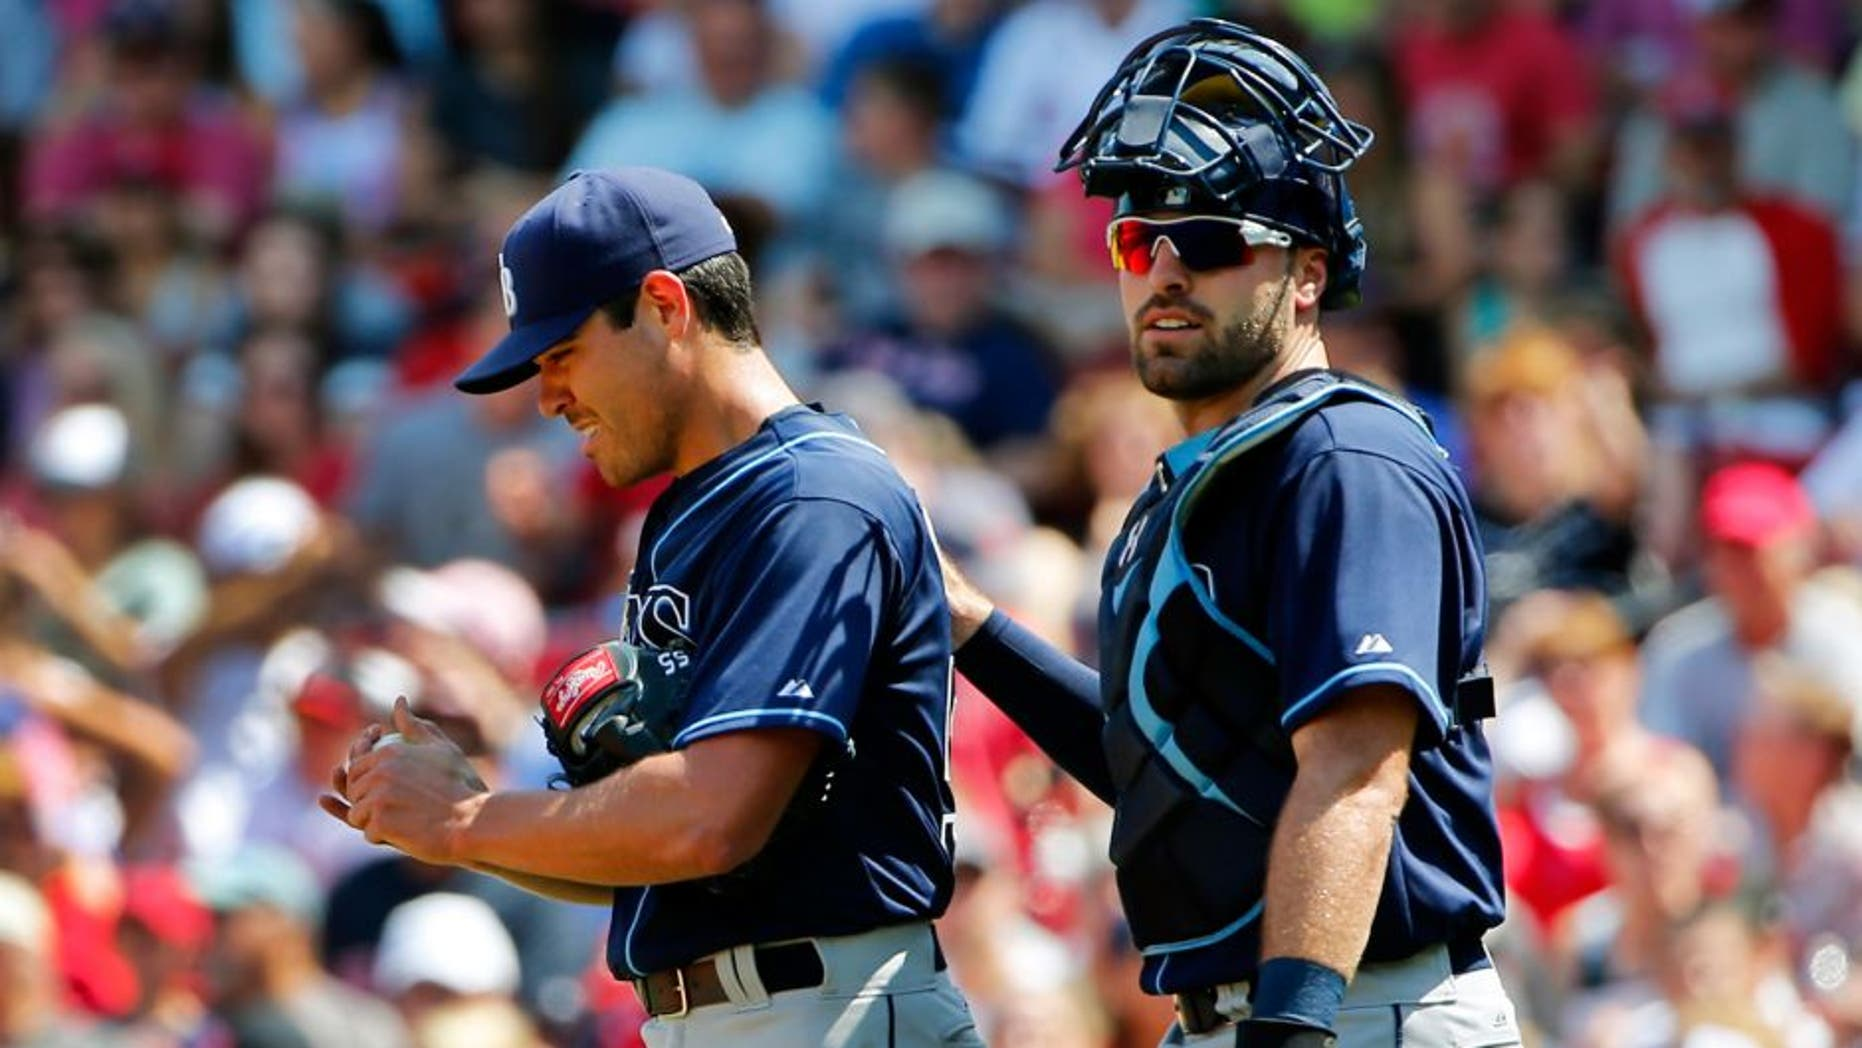 Tampa Bay Rays starting pitcher Matt Moore gets a pat on the back from catcher Curt Casali after giving up a run to the Boston Red Sox during the second inning of a baseball game at Fenway Park in Boston Saturday, Aug. 1, 2015. (AP Photo/Winslow Townson)